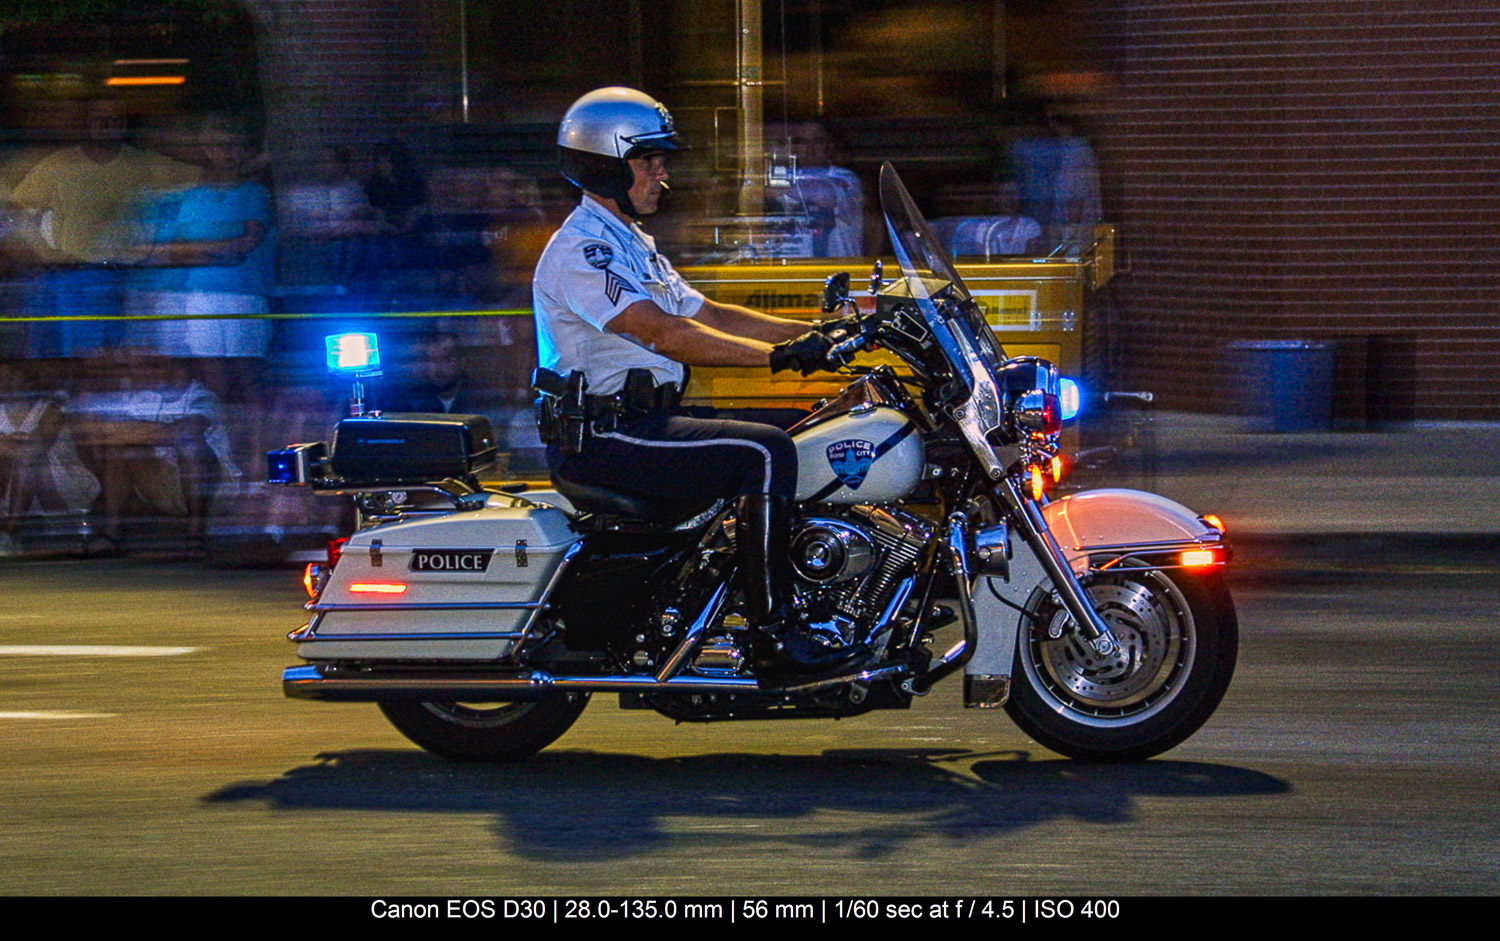 police officer riding a motorbike